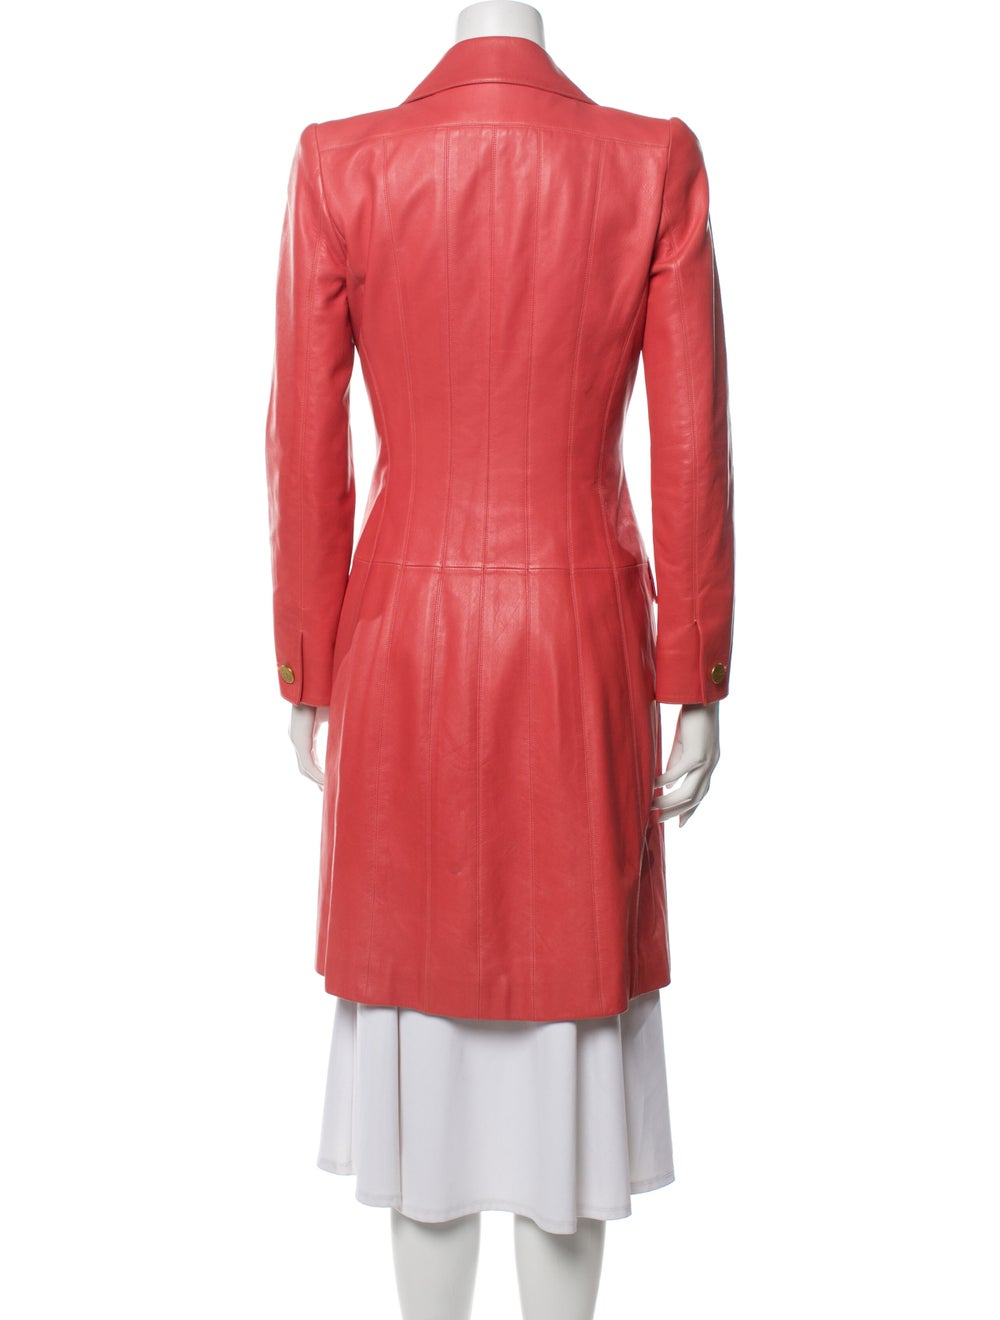 Chanel 2001 Trench Coat Pink - image 3